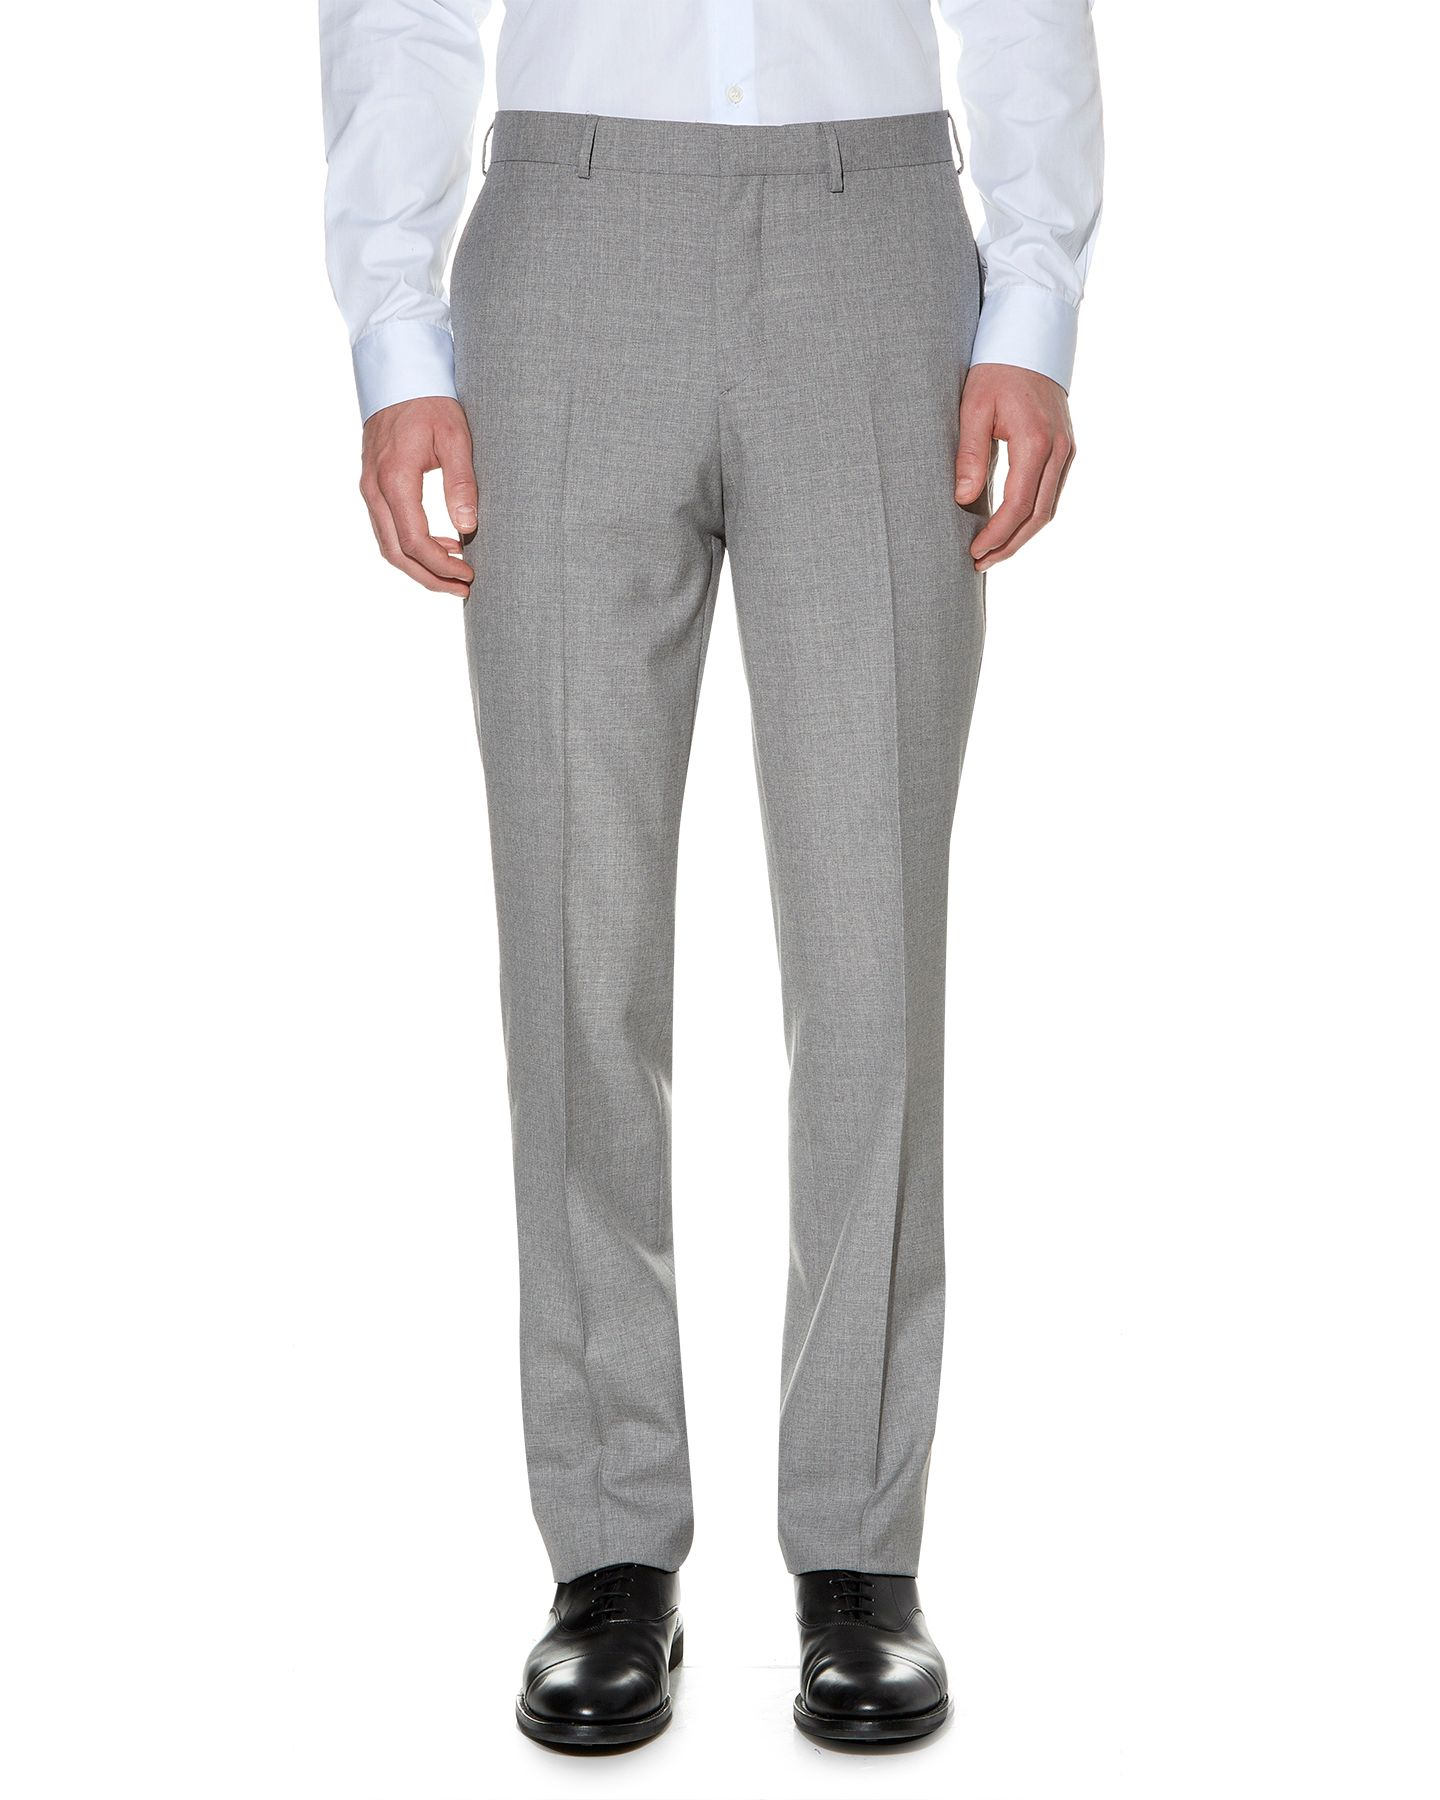 Pickard trouser